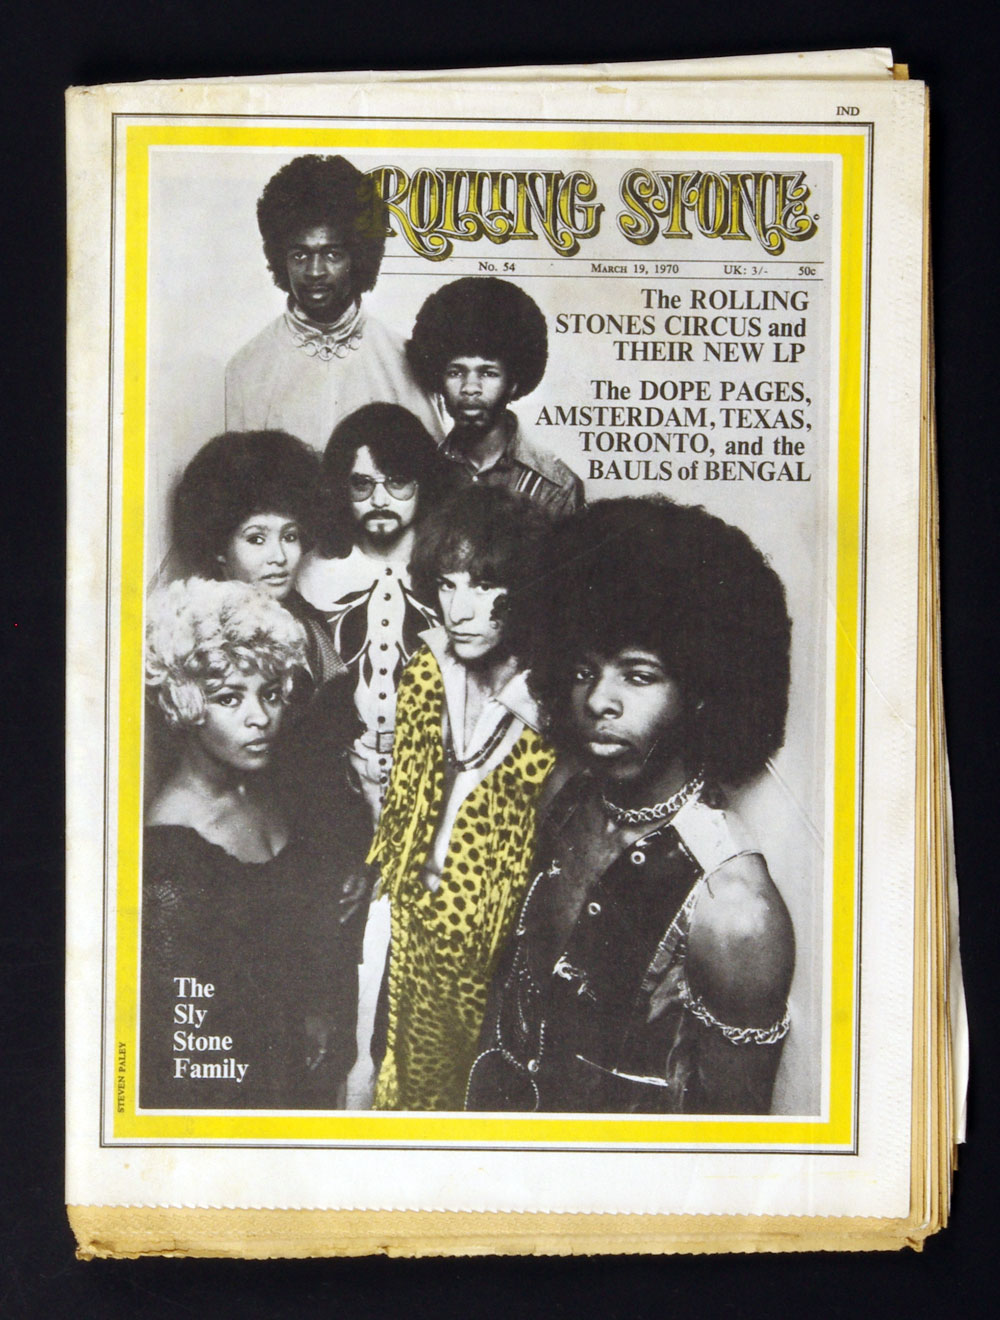 Rolling Stone Magazine 1970 Mar 19 No. 54 Sly and the Family Stone